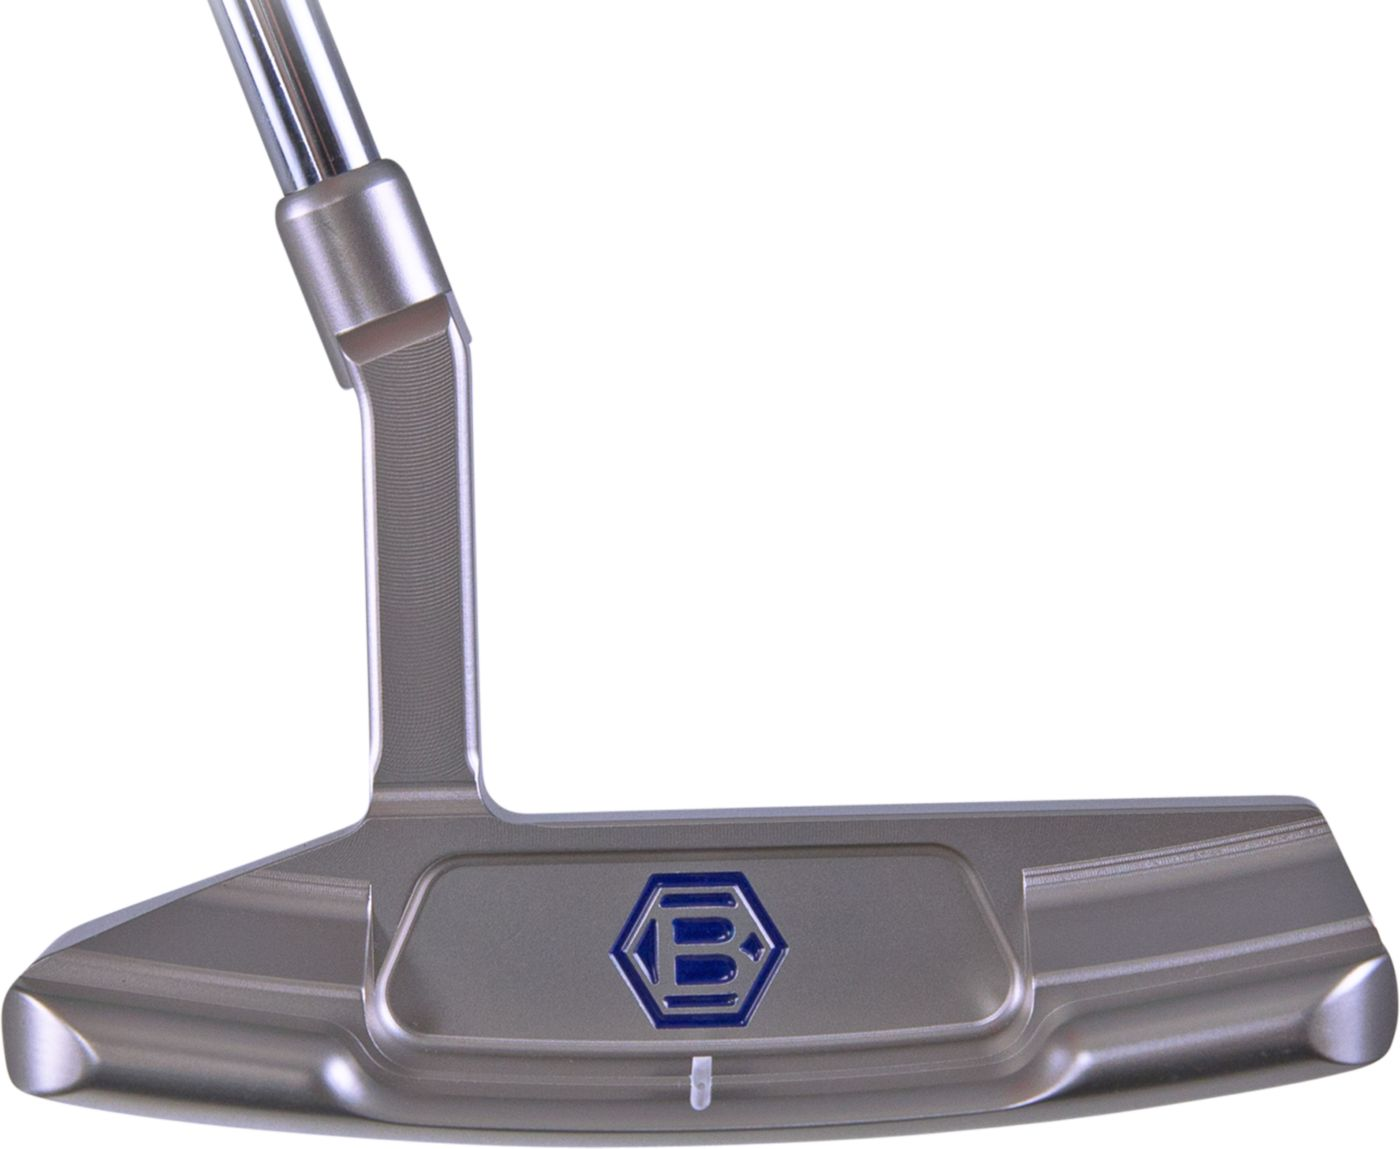 Bettinardi 2019 Studio Stock 2 Putter